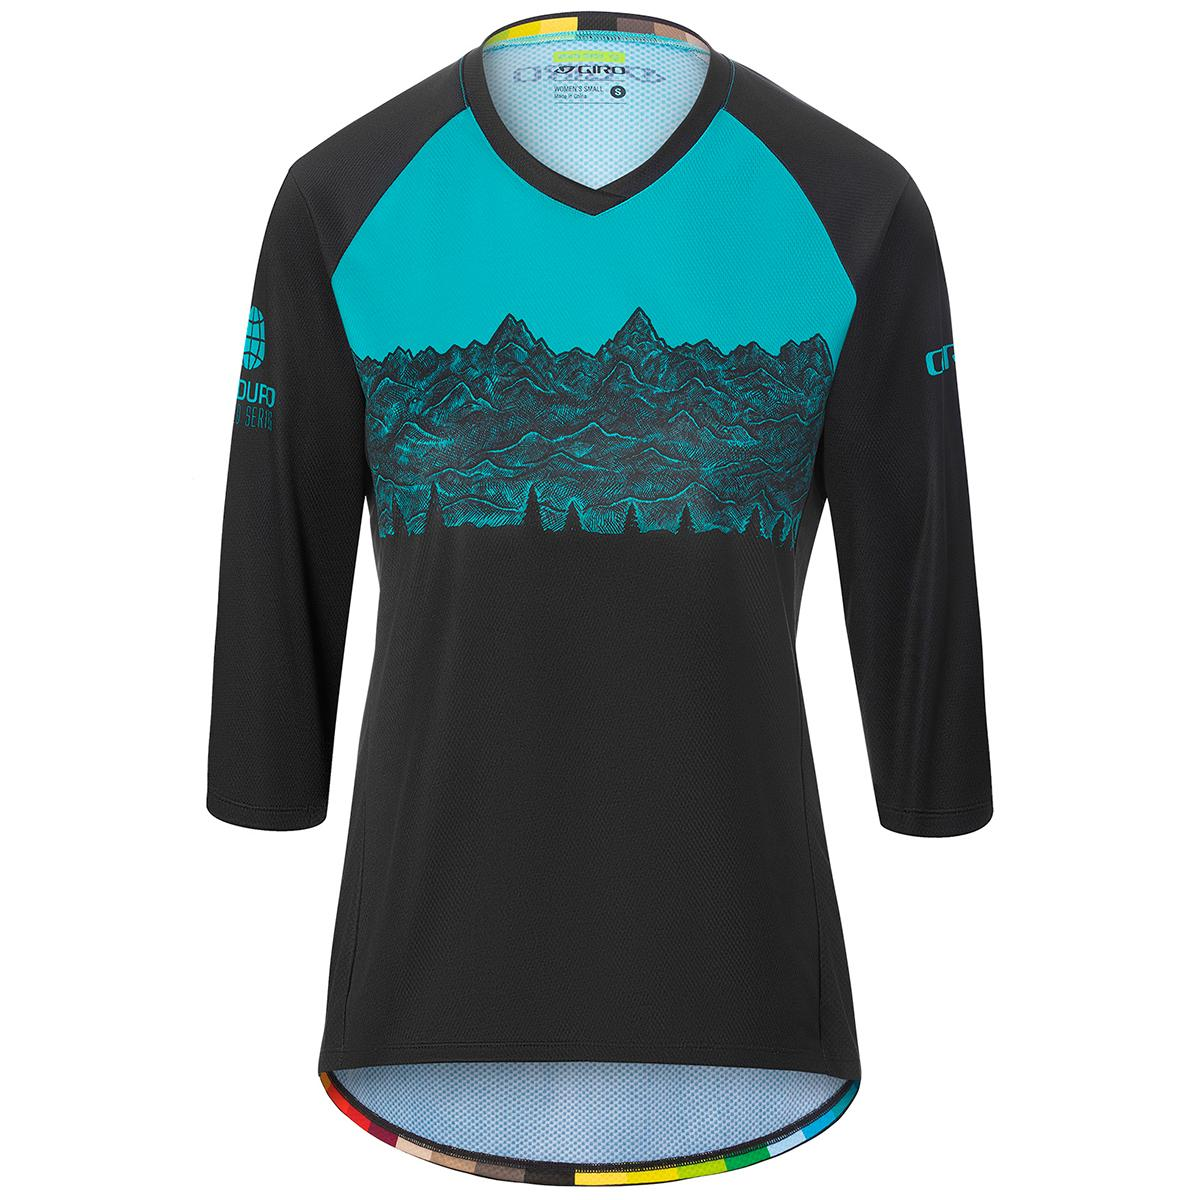 Giro women's Roust 3/4 Jersey in EWS front view